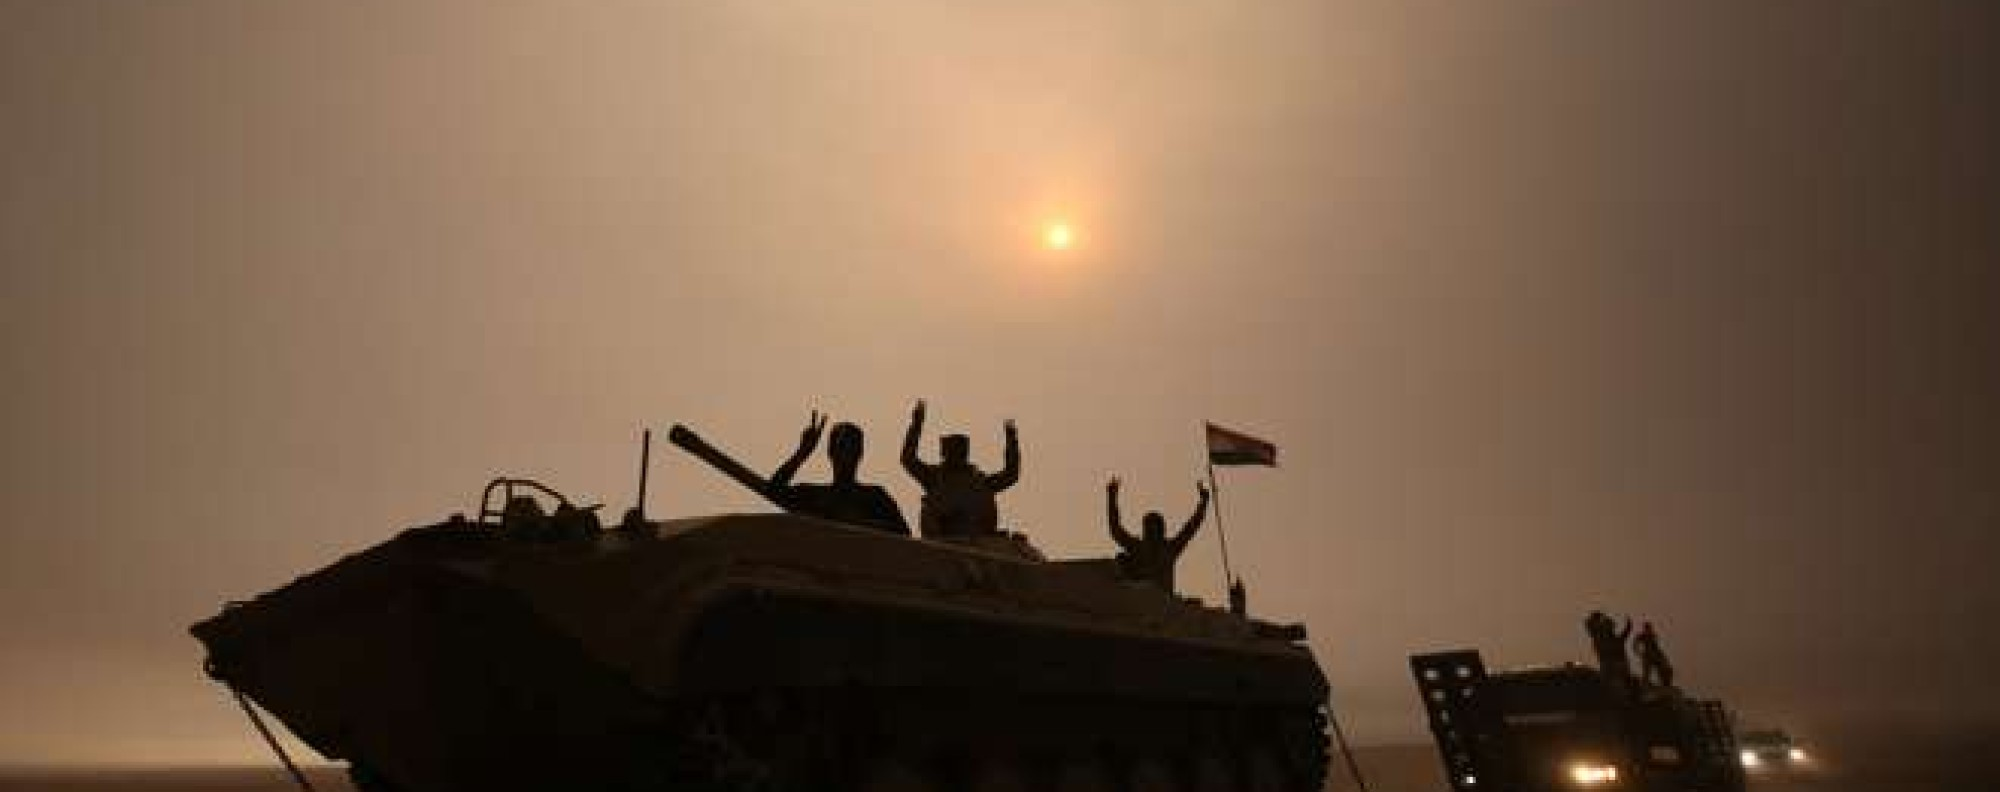 Iraqi forces flash the V-sign as they stand on an infantry fighting vehicle loaded on a truck driving through the Al-Shura area, south of Mosul, on October 24, 2016, during an operation to retake the main hub city from the Islamic State (IS) group jihadists. Iraqi forces advancing on Mosul faced stiff resistance from the Islamic State group on October 24 despite the US-led coalition unleashing an unprecedented wave of air strikes to support the week-old offensive. Federal forces and Kurdish peshmerga fighters were moving forward in several areas, AFP correspondents on various fronts said, but the jihadists were hitting back with shelling, sniper fire, suicide car bombs and booby traps. / AFP PHOTO / AHMAD AL-RUBAYE